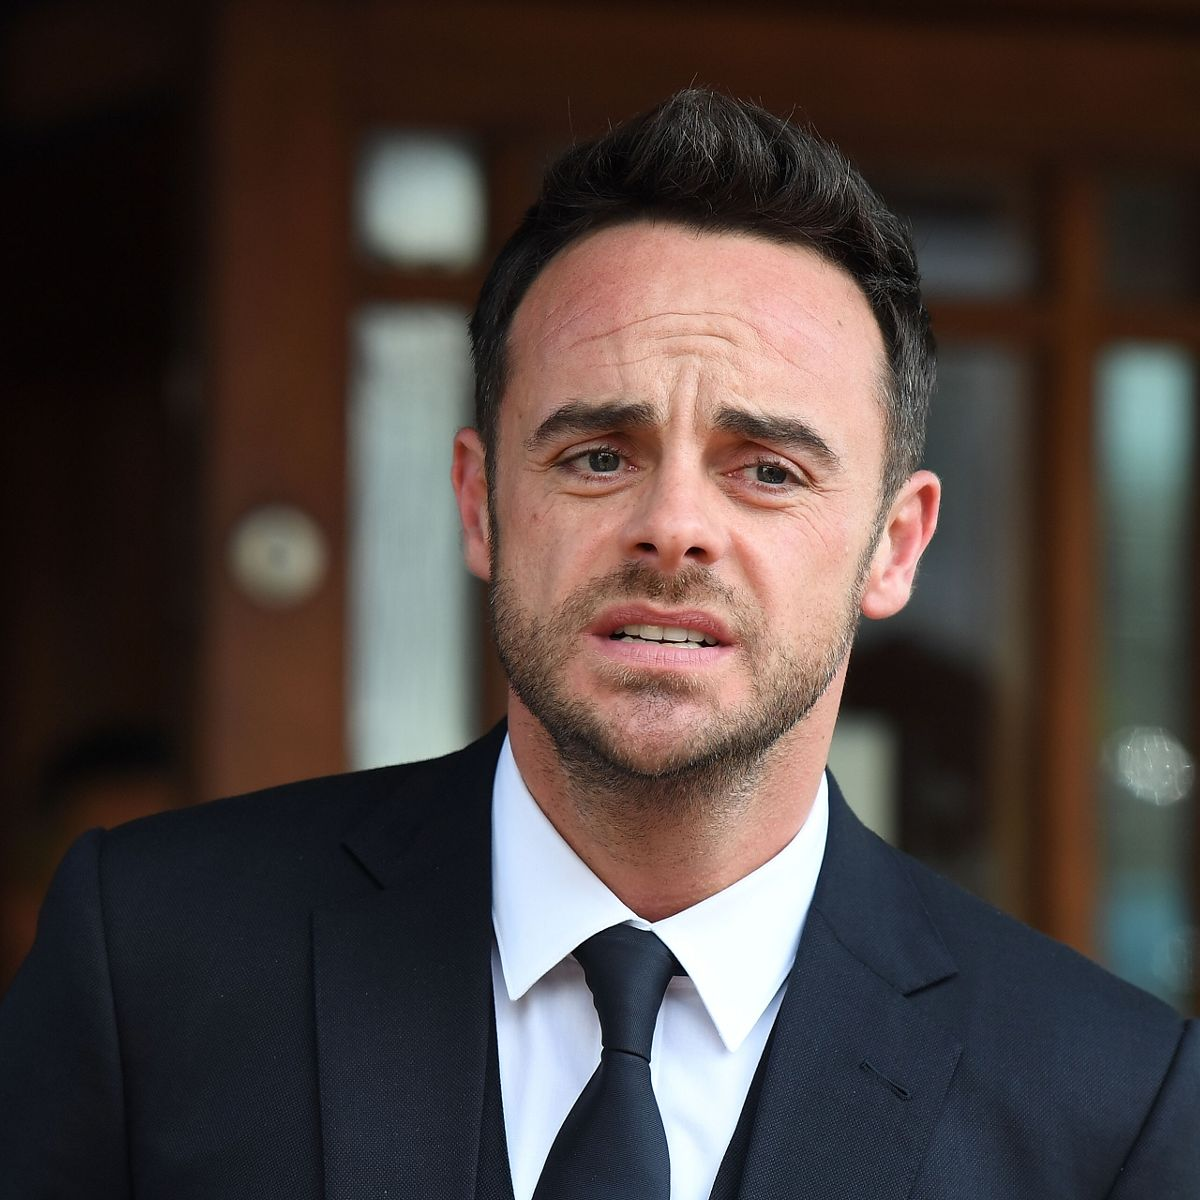 Anthony McPartlin Phone number, Email Id, Fanmail, Instagram, Tiktok, and Contact Details